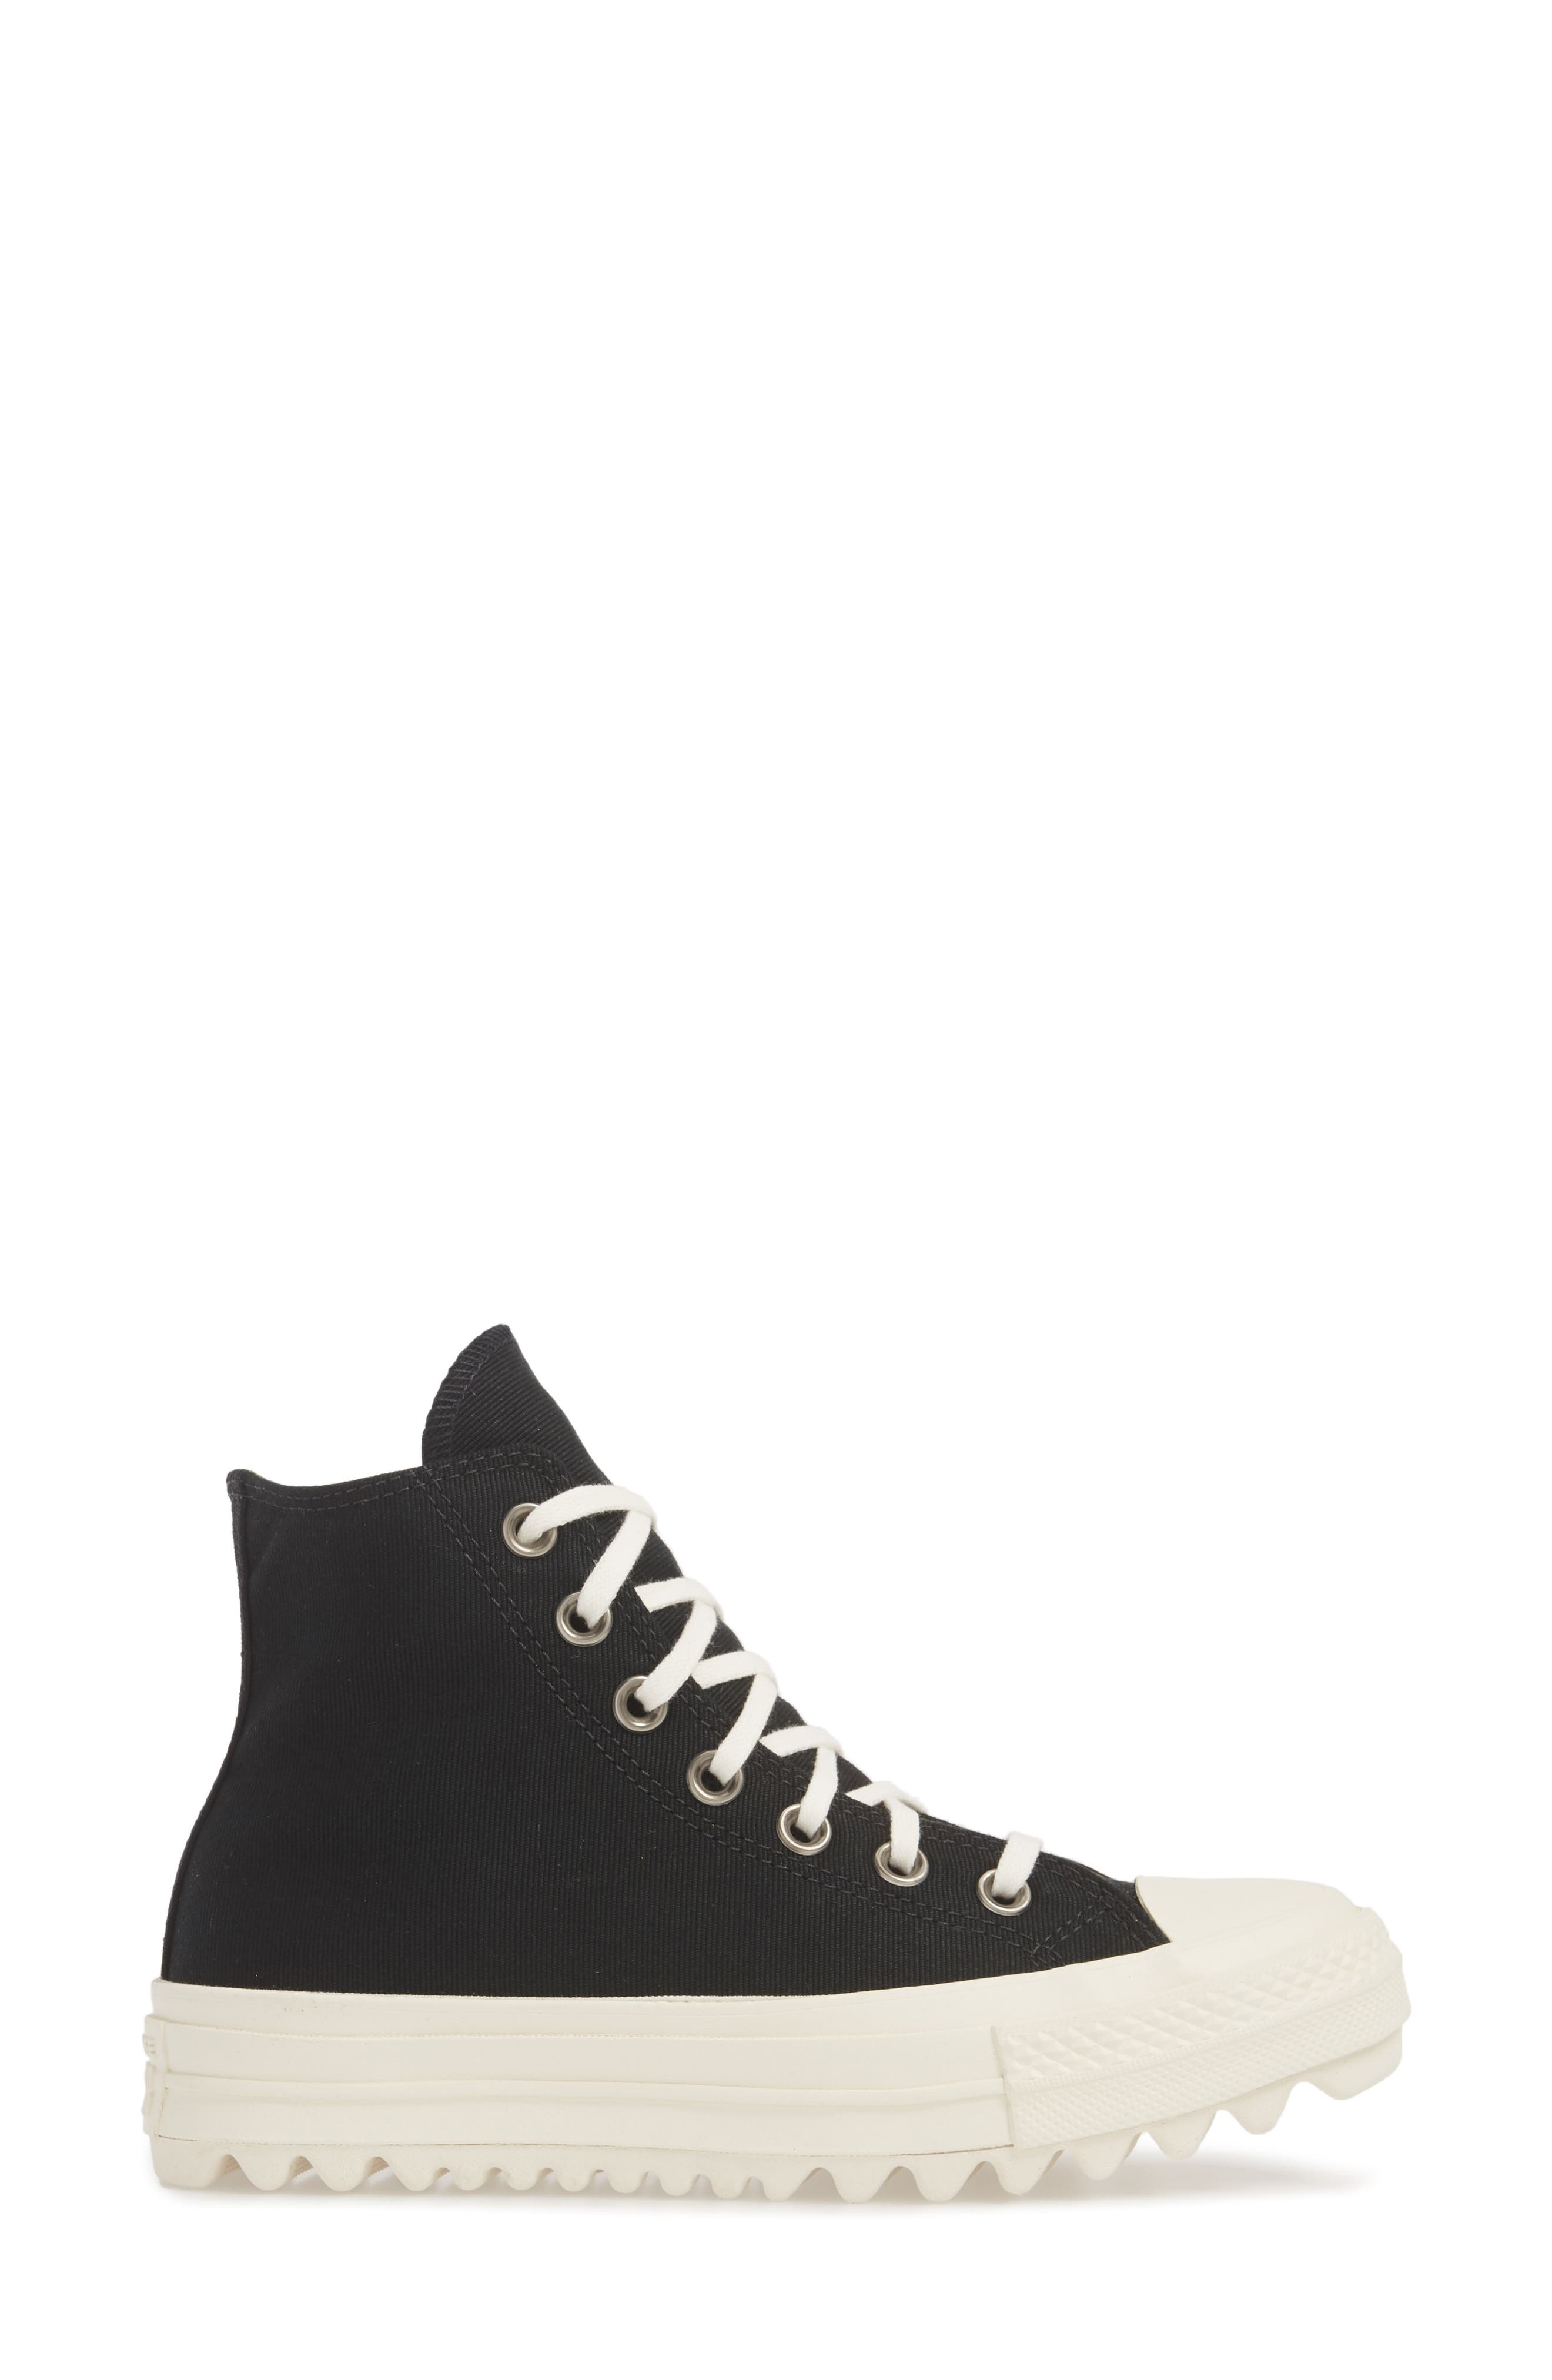 Chuck Taylor<sup>®</sup> All Star<sup>®</sup> Ripple High Top Sneaker,                             Alternate thumbnail 3, color,                             001